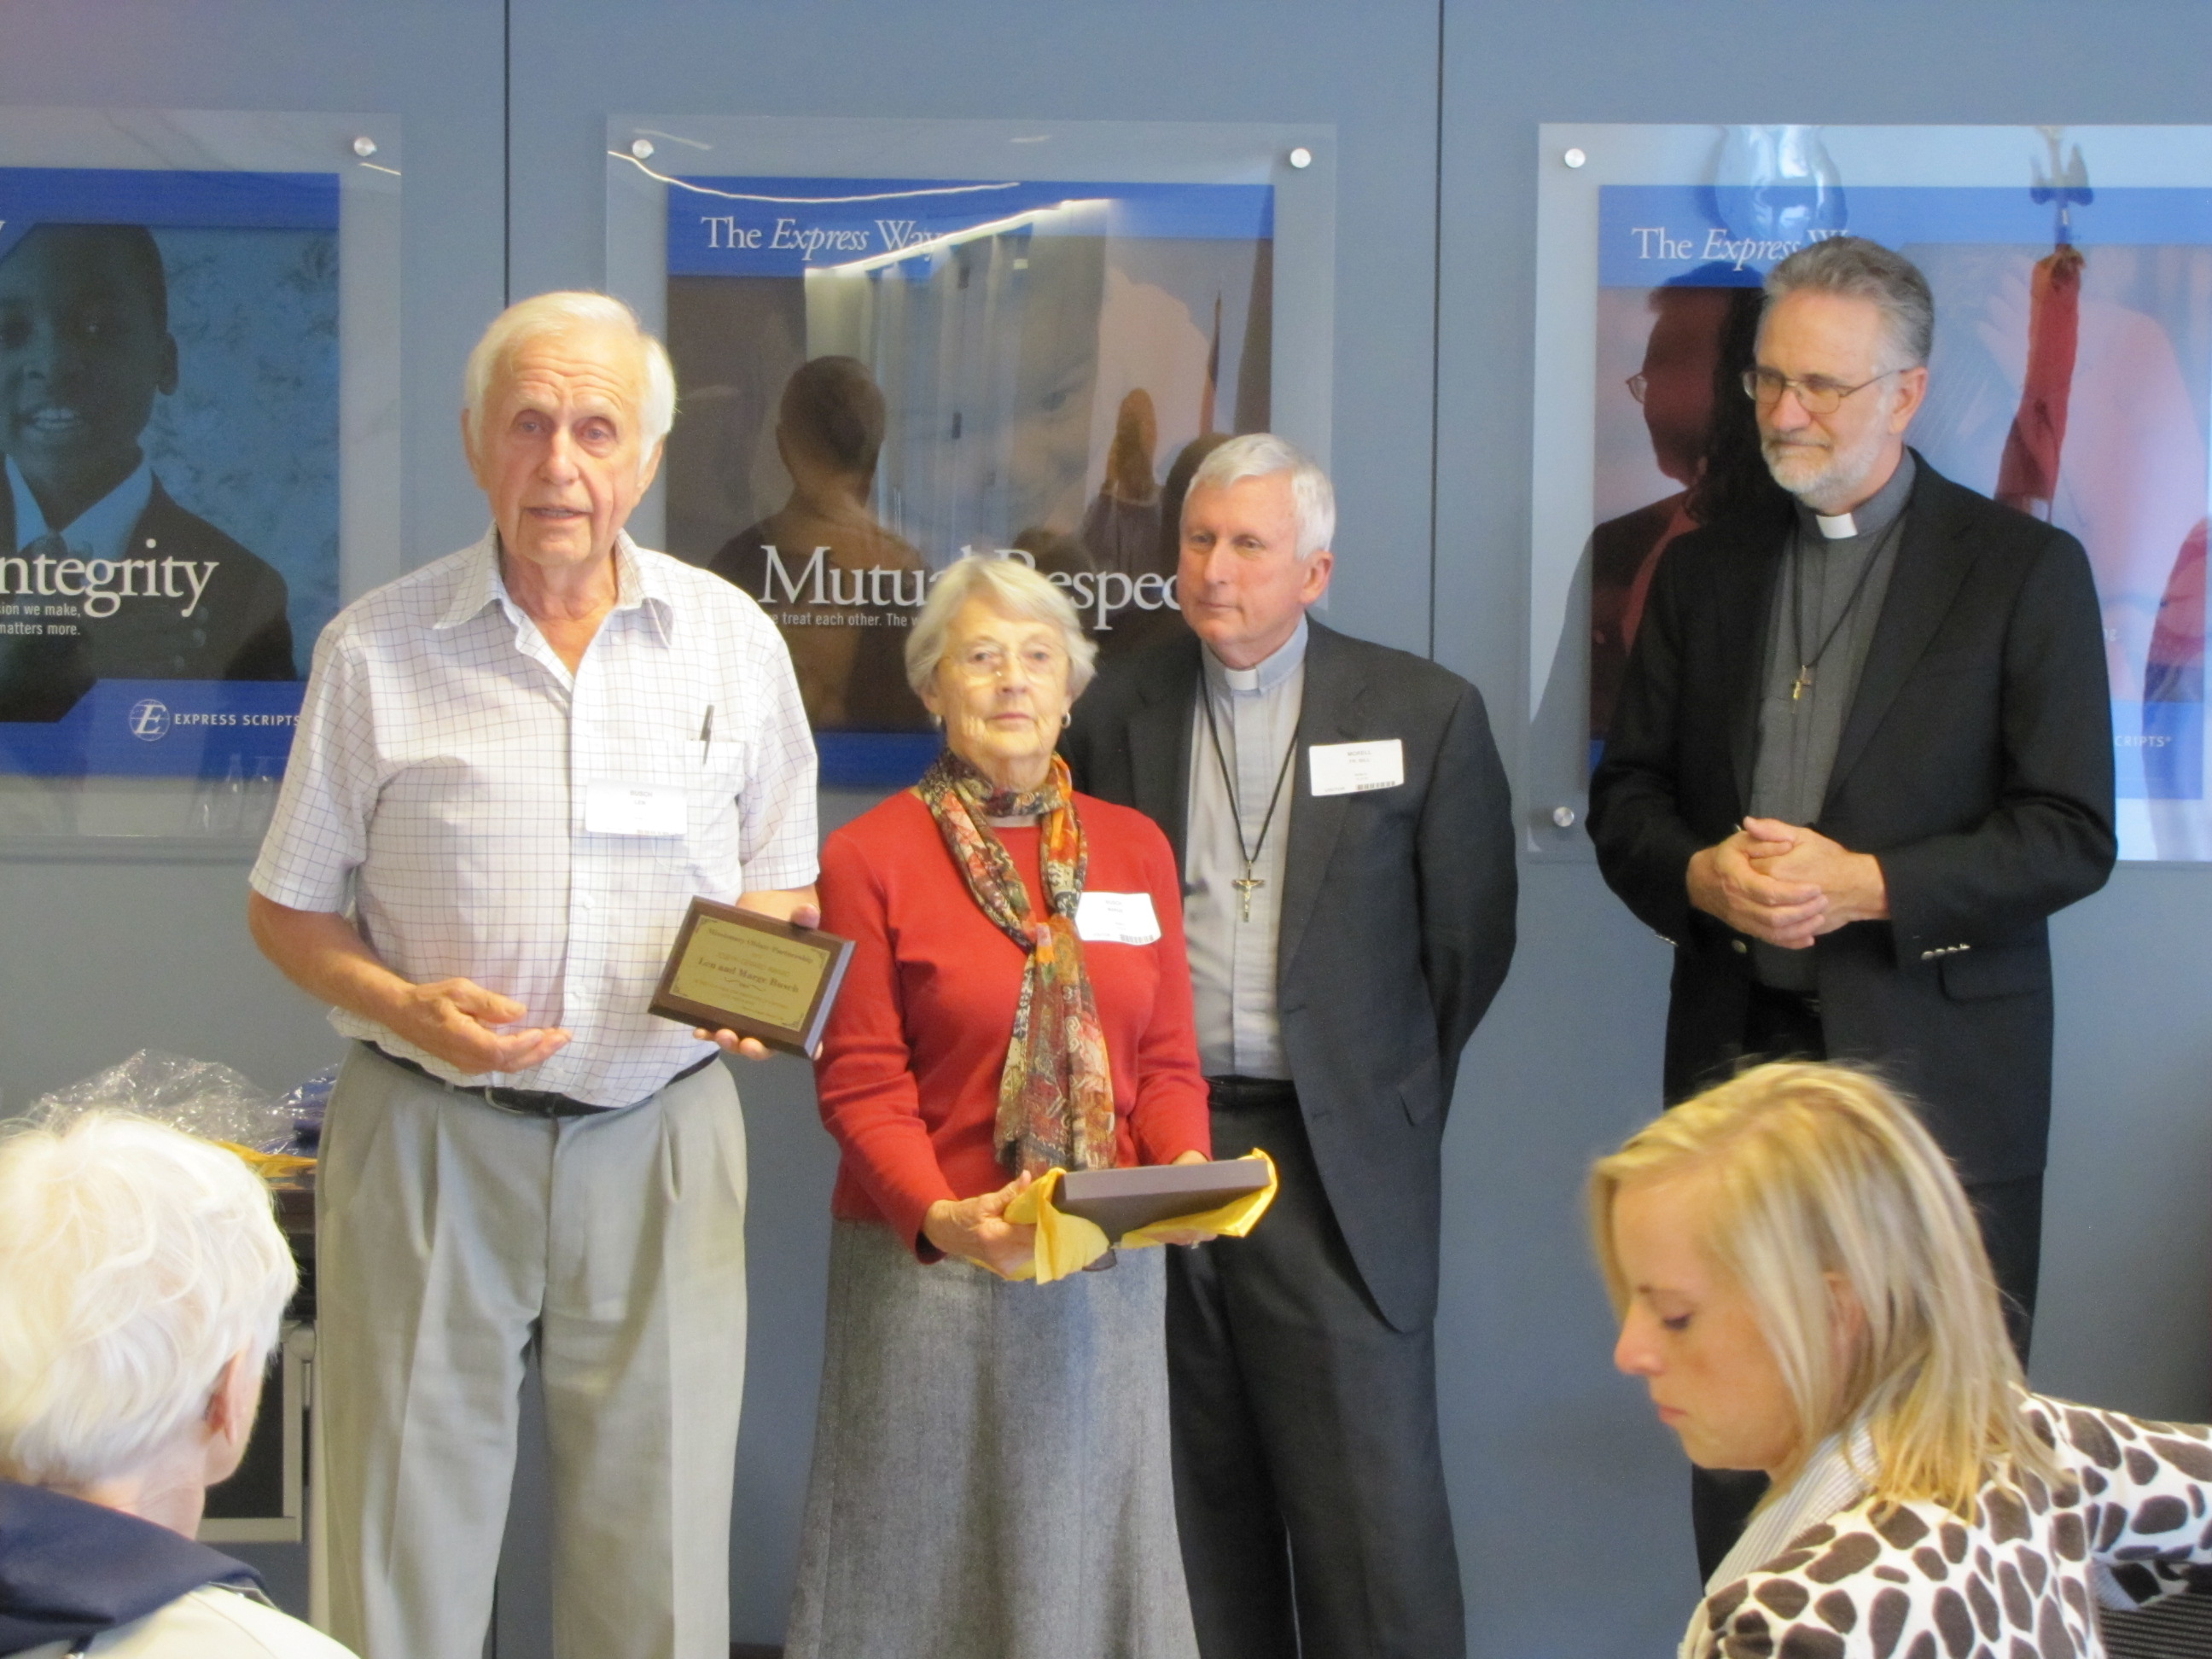 L-R Len and Marge Busch receive Gerard Award from Fathers Bill Morell and Bill Antone.